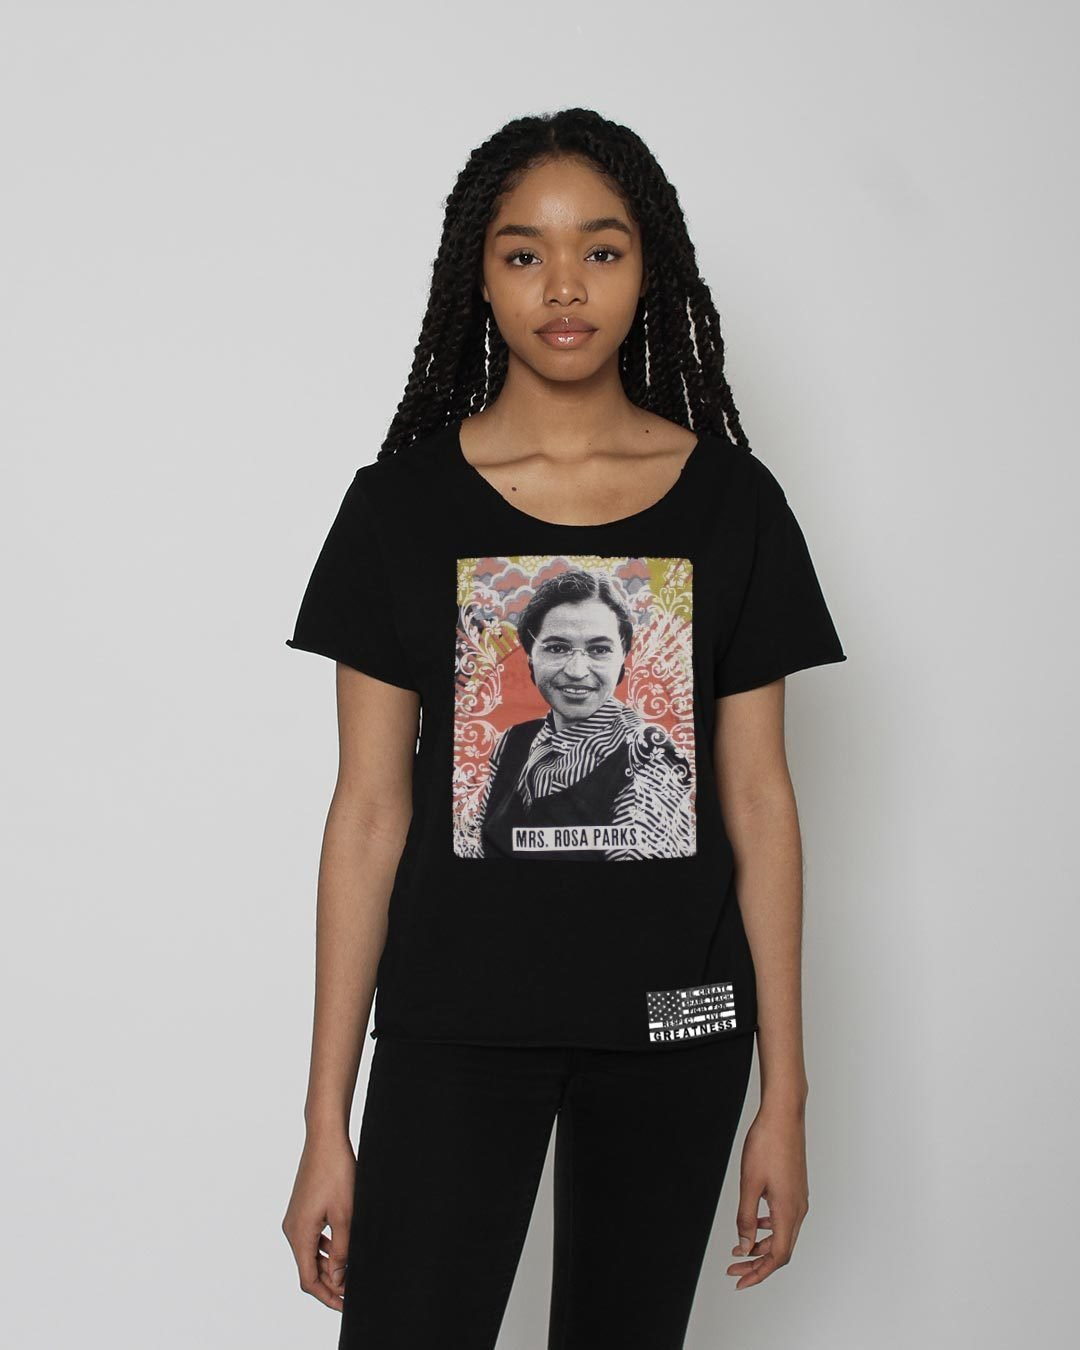 BHT - Rosa Parks Portrait Women's Tee - Roots of Inc dba Roots of Fight